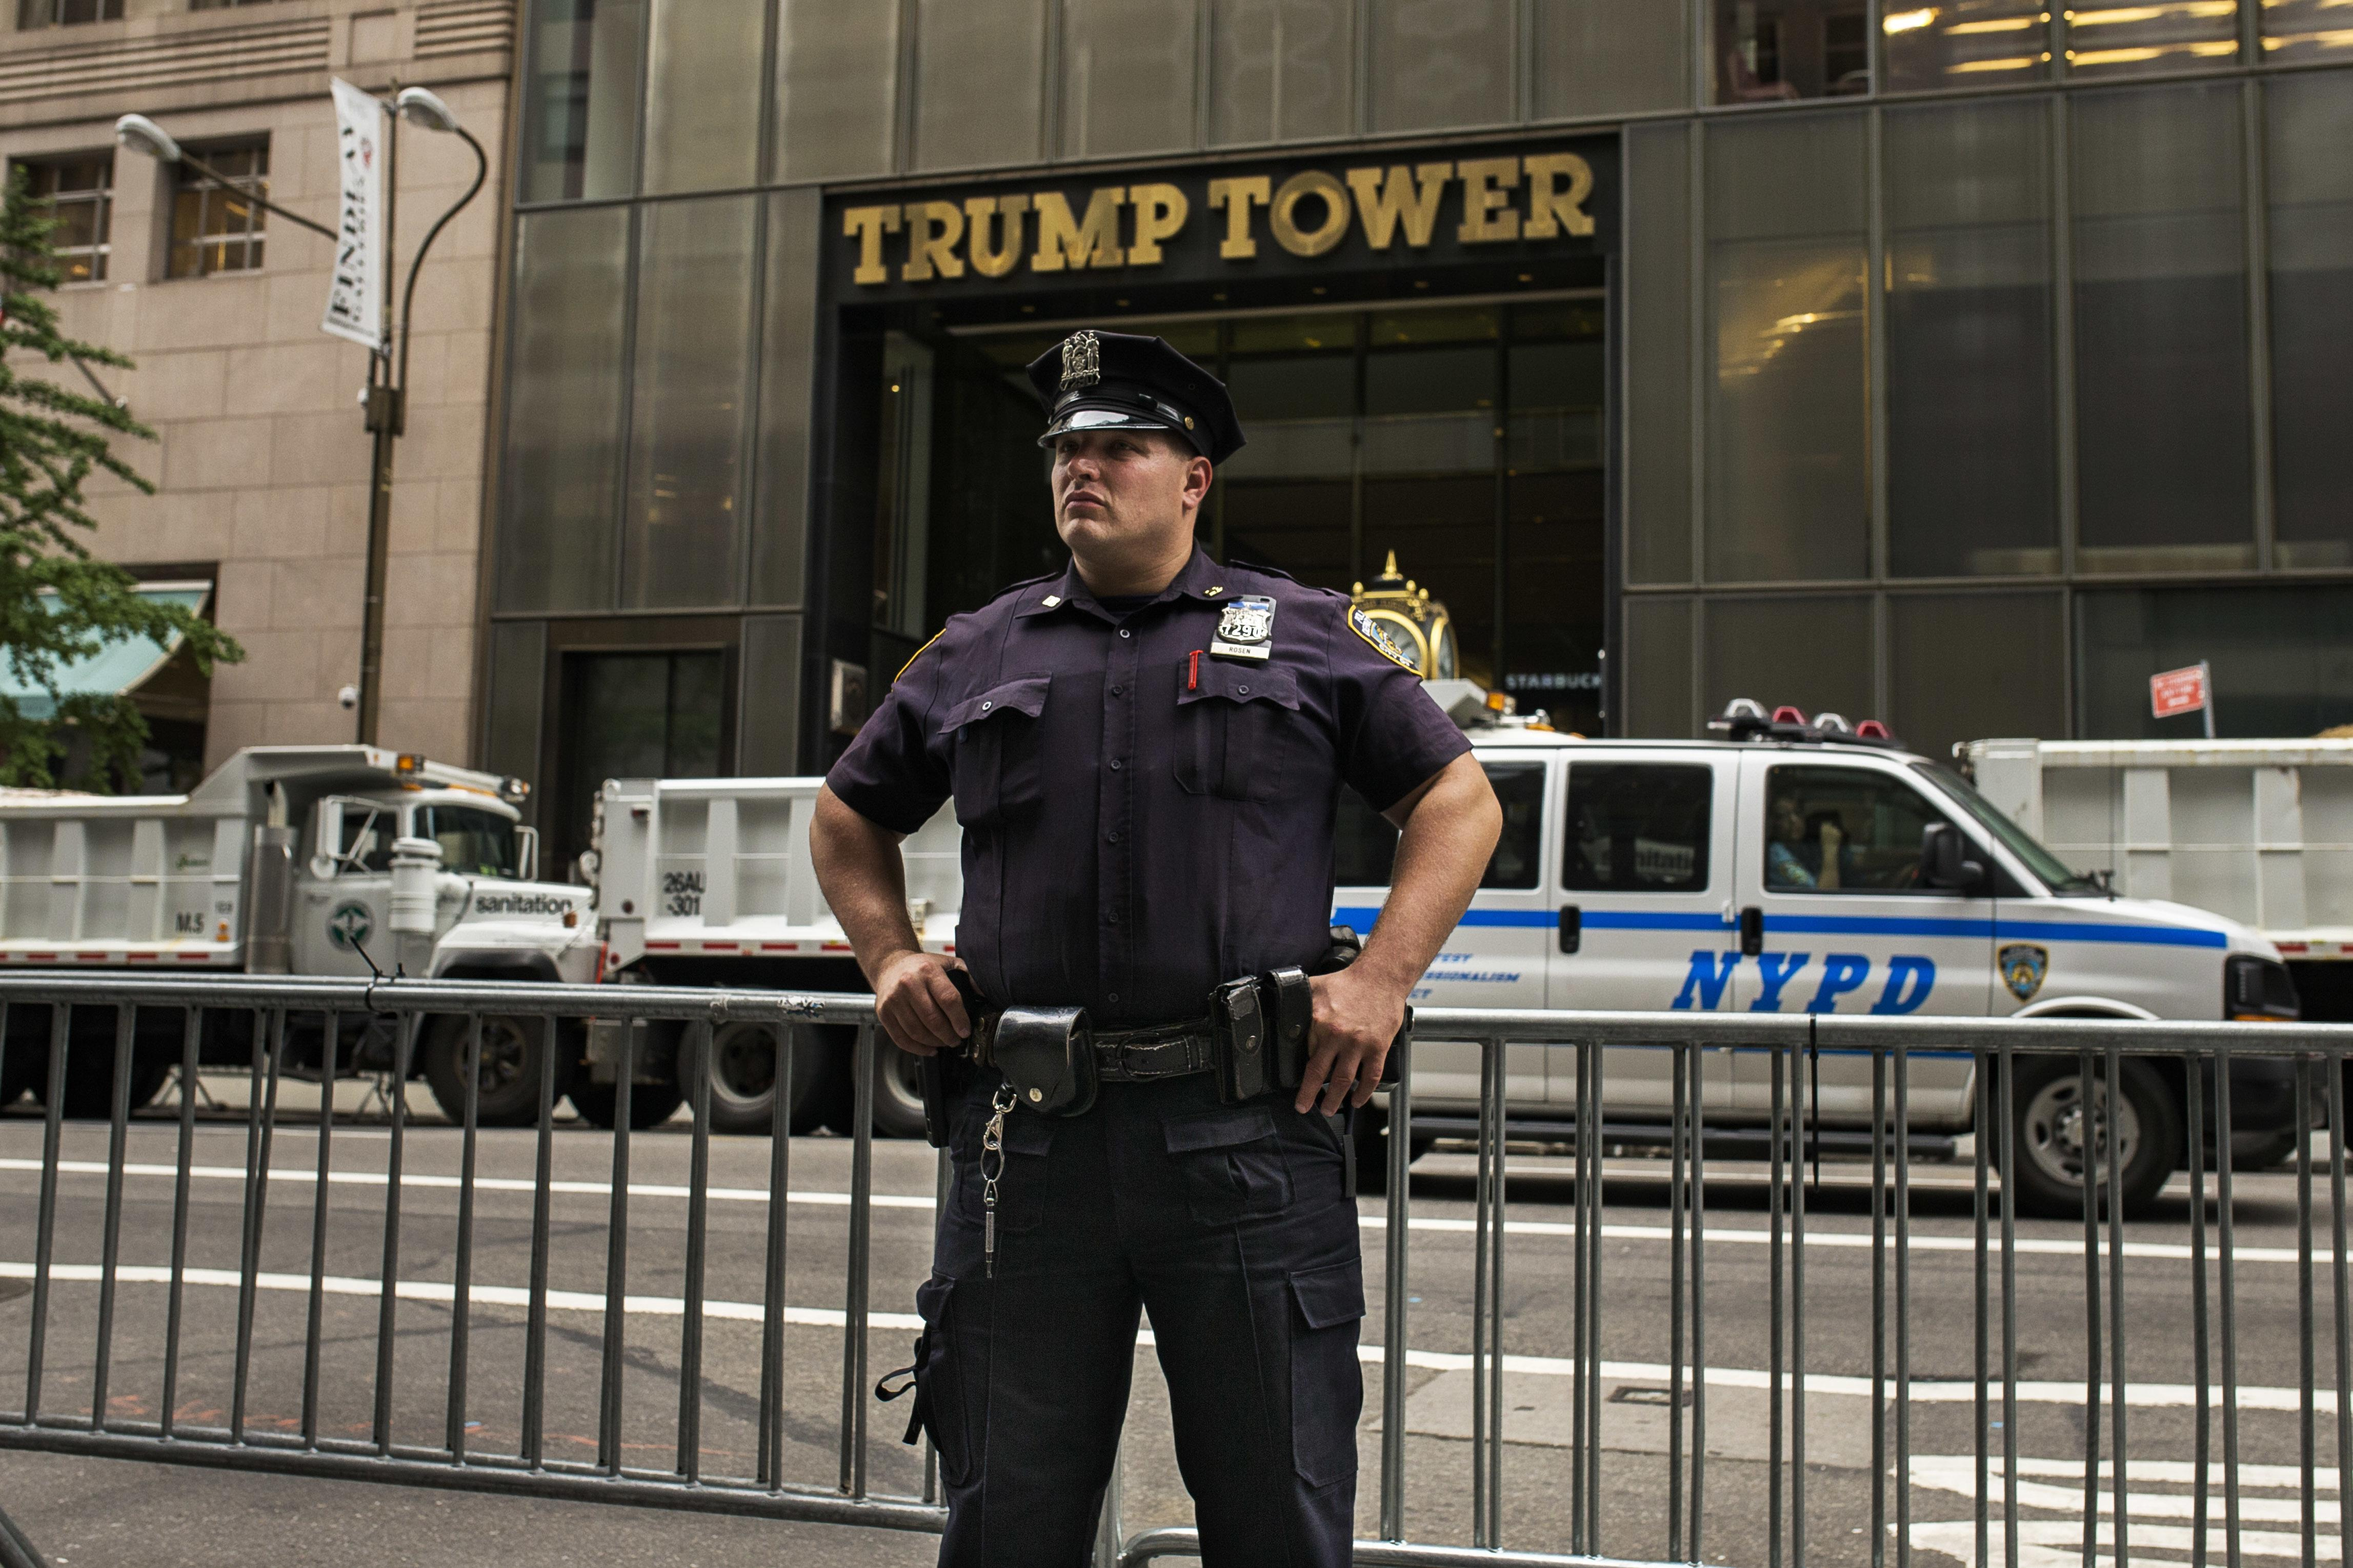 Petition to rename Trump Tower street after Obama hits legal snag